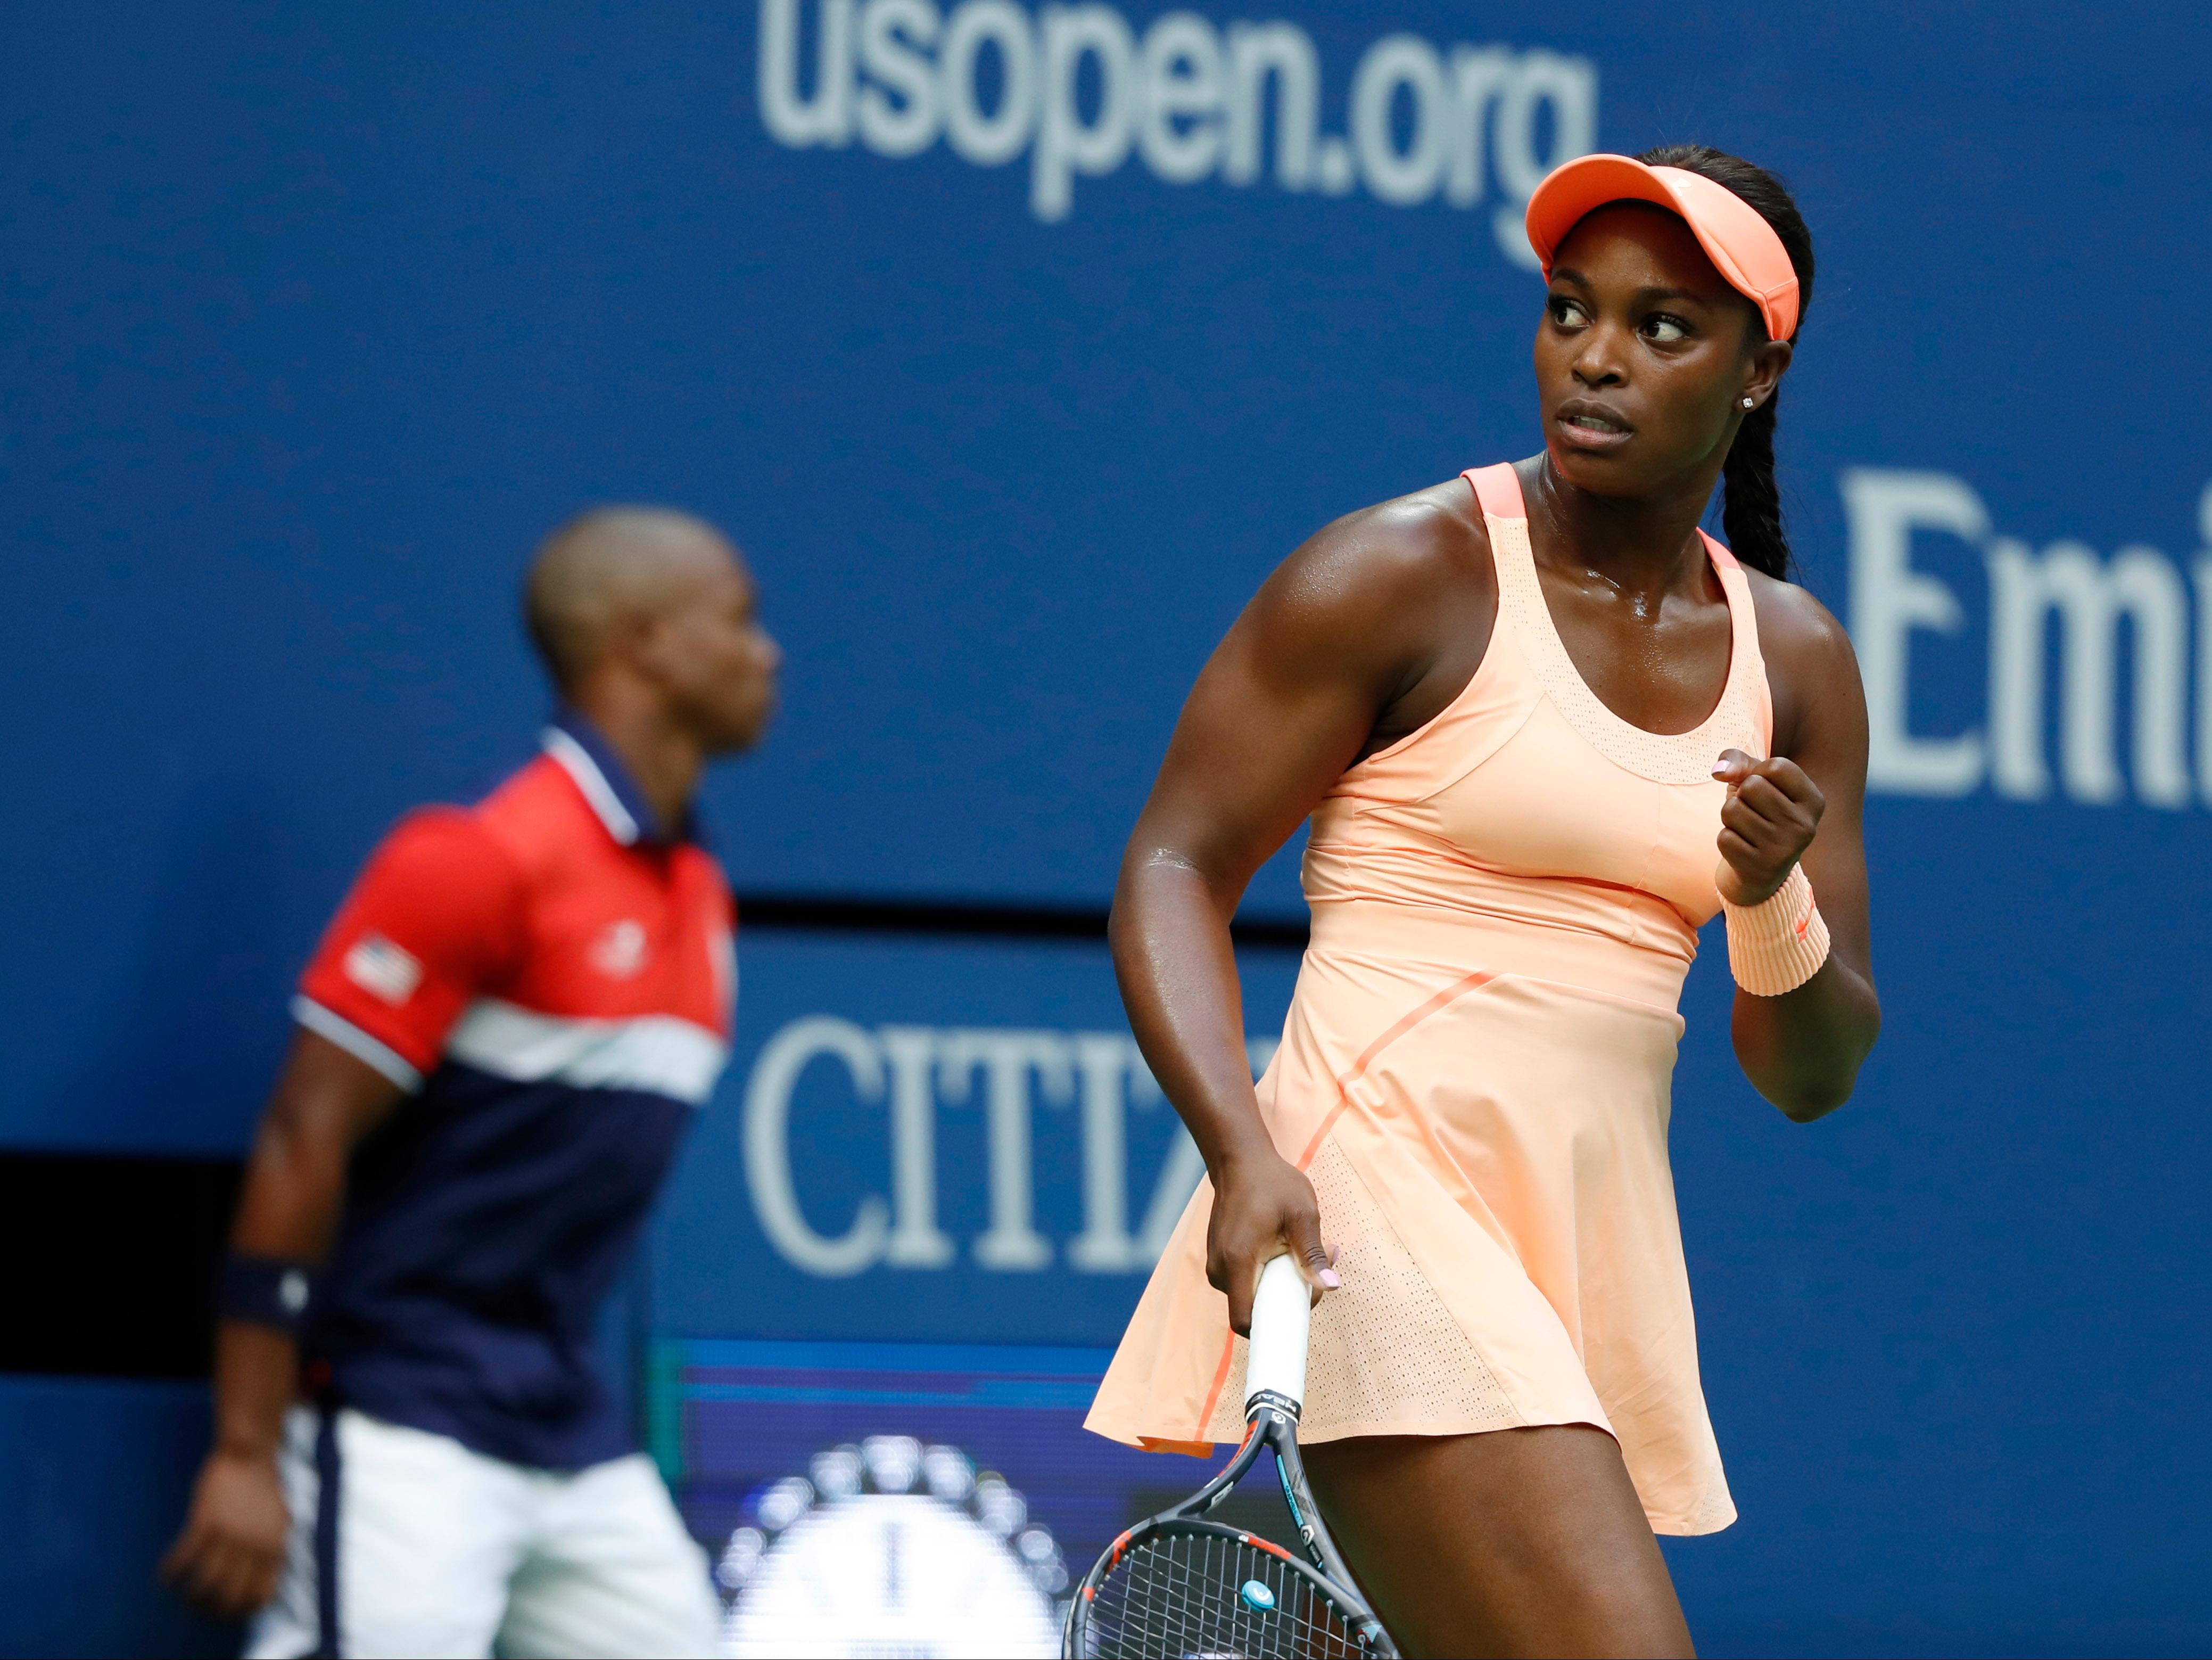 Sloane Stephens, of the United States, reacts after scoring a point against Madison Keys, of the United States, during the women's singles final of the U.S. Open tennis tournament, Saturday, Sept. 9, 2017, in New York. (AP Photo/Adam Hunger)